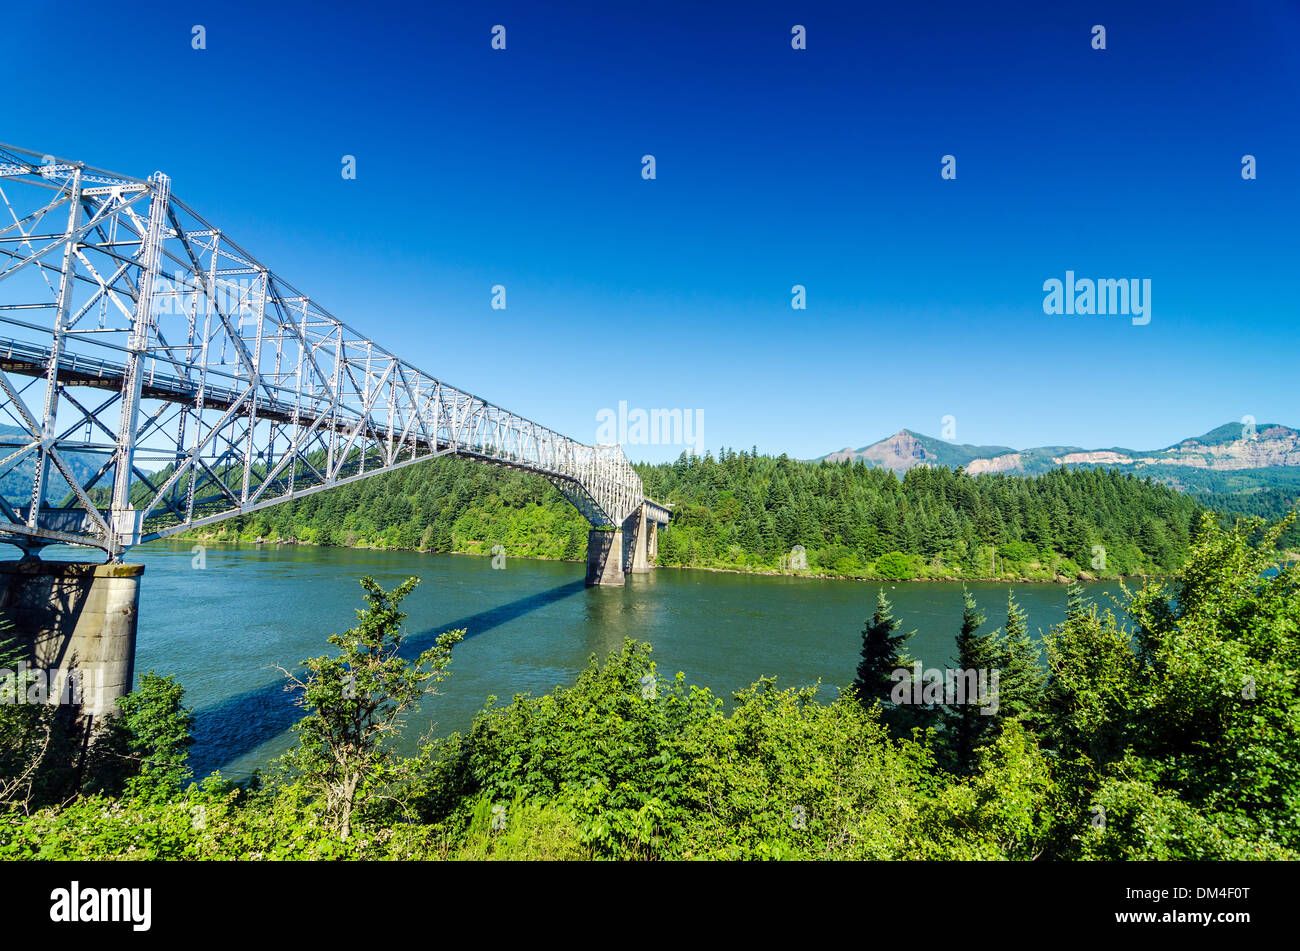 View of the Bridge of the Gods as seen from Oregon crossing the Columbia River into Washington - Stock Image